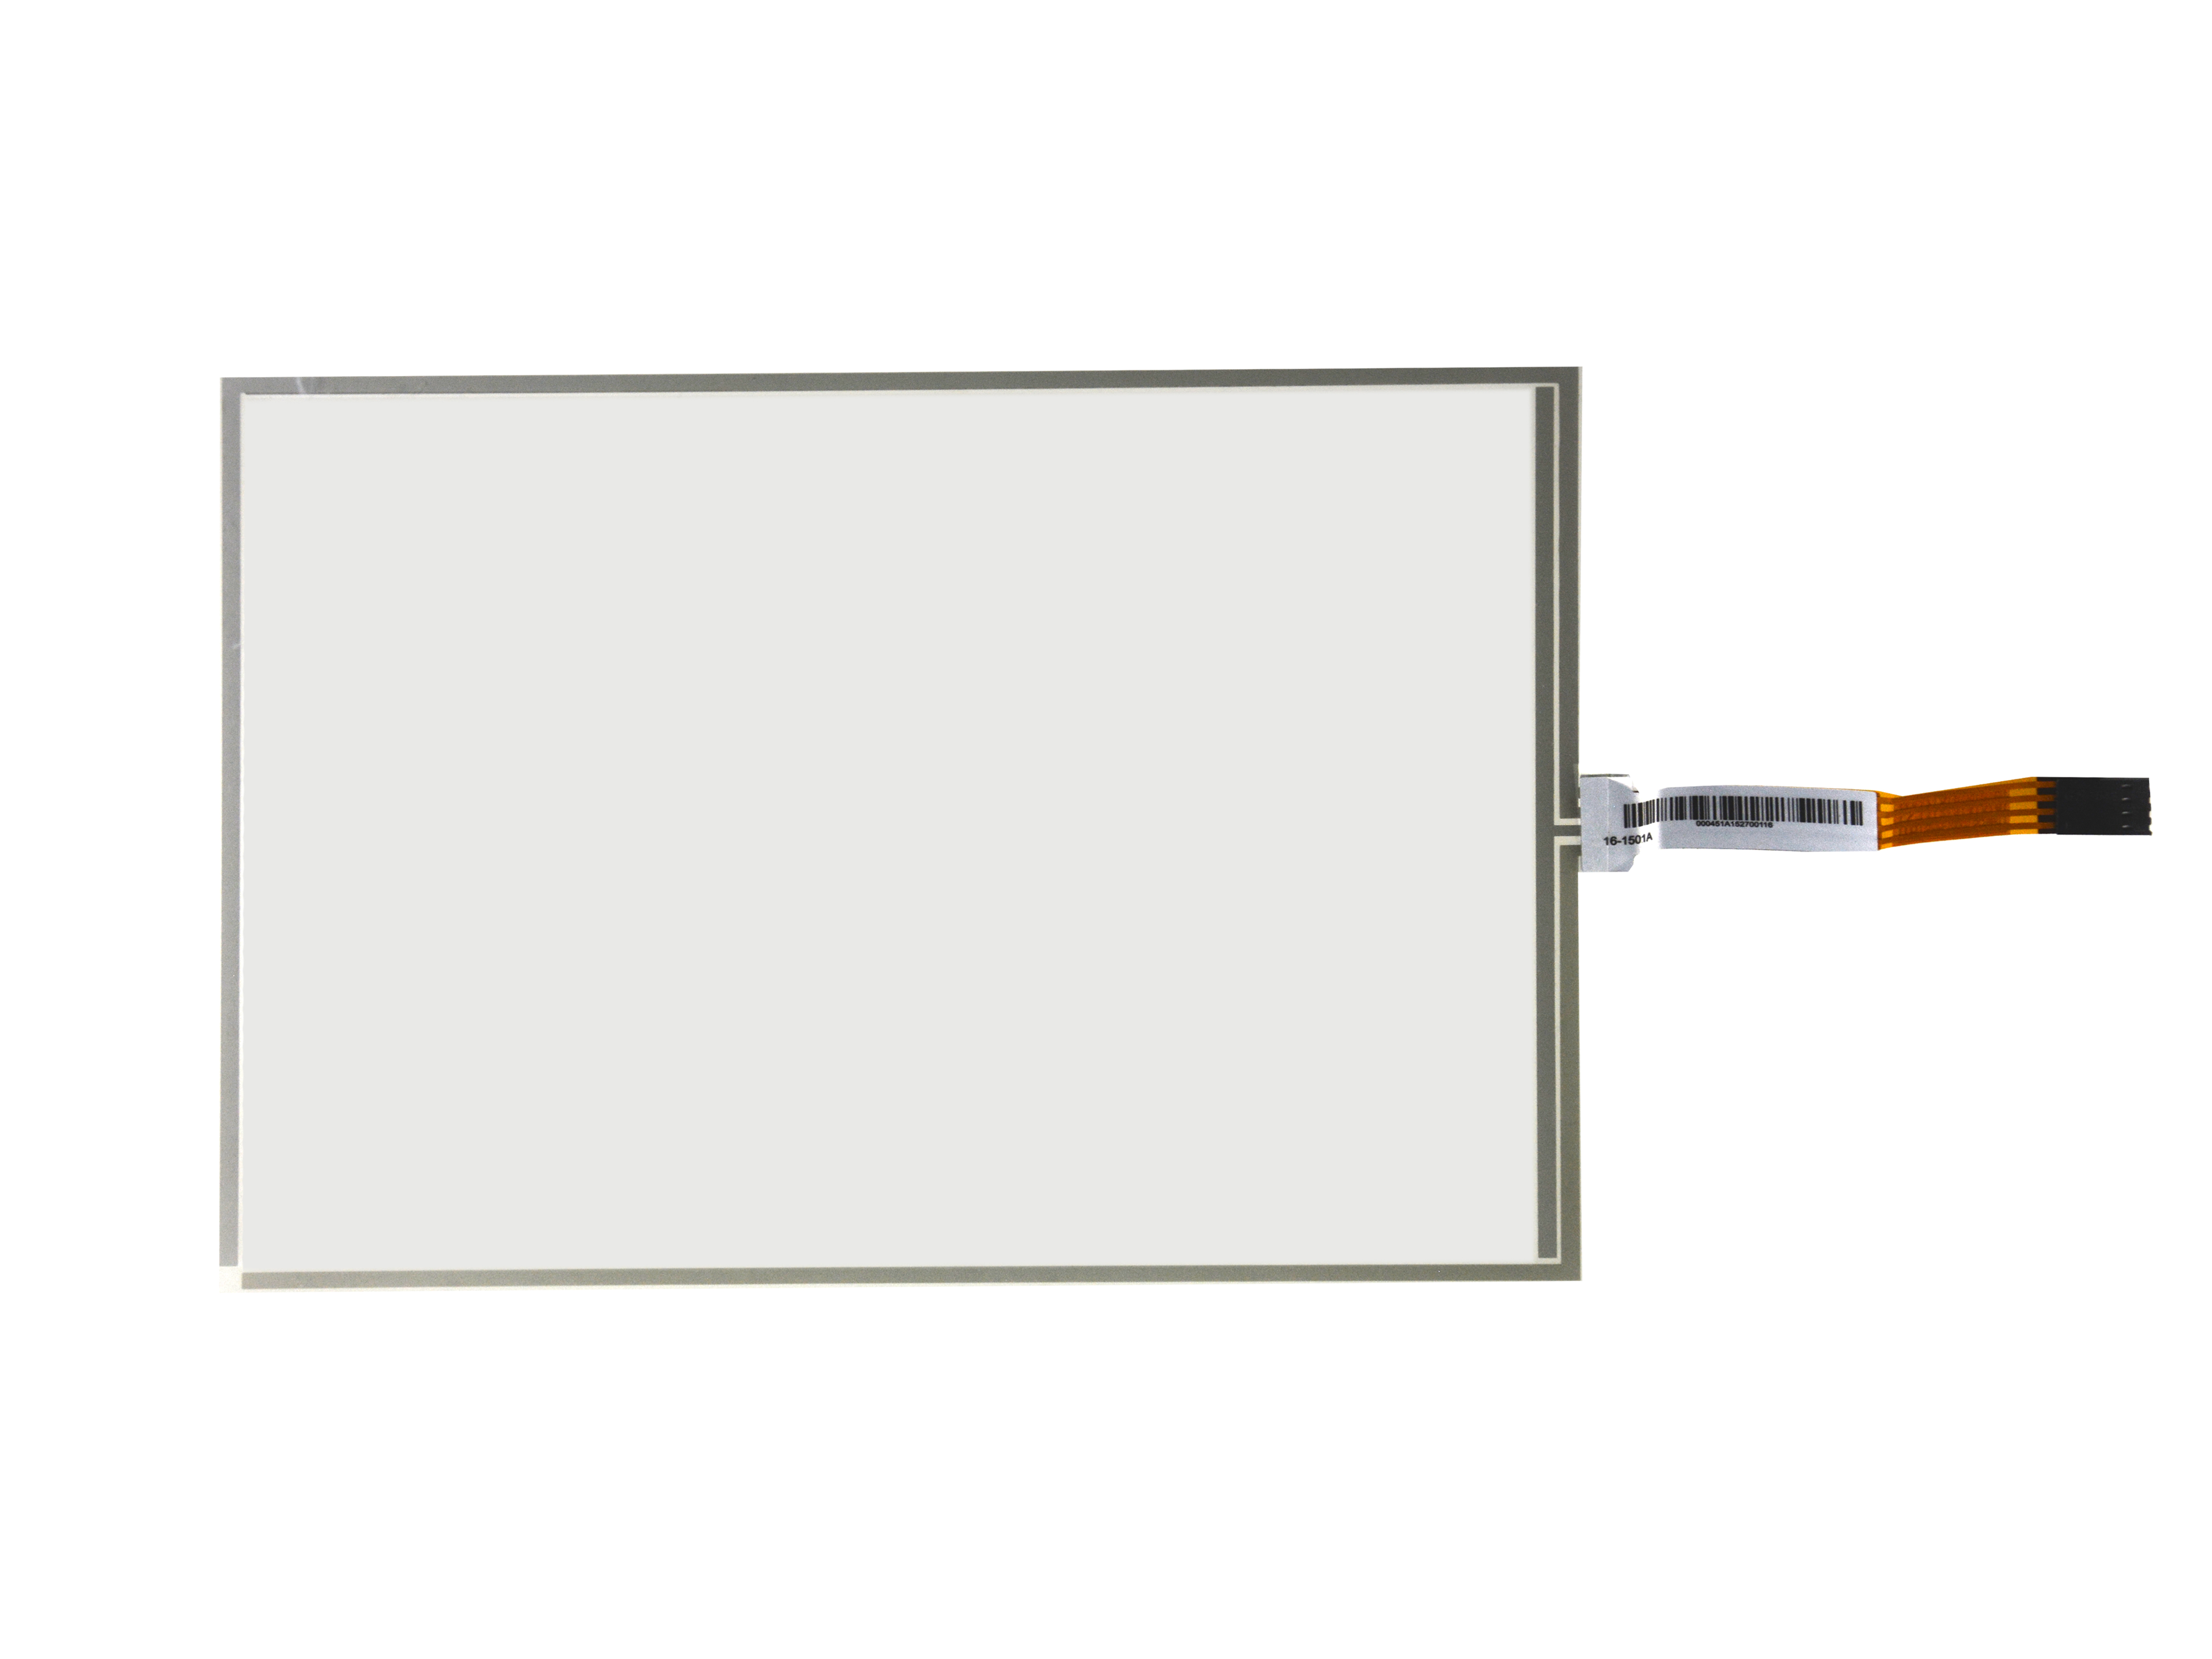 10.4inch 4 Wire Resistive Touch Panel 234mm x 178mm 4:3 For 10.4inch  LCD Screen